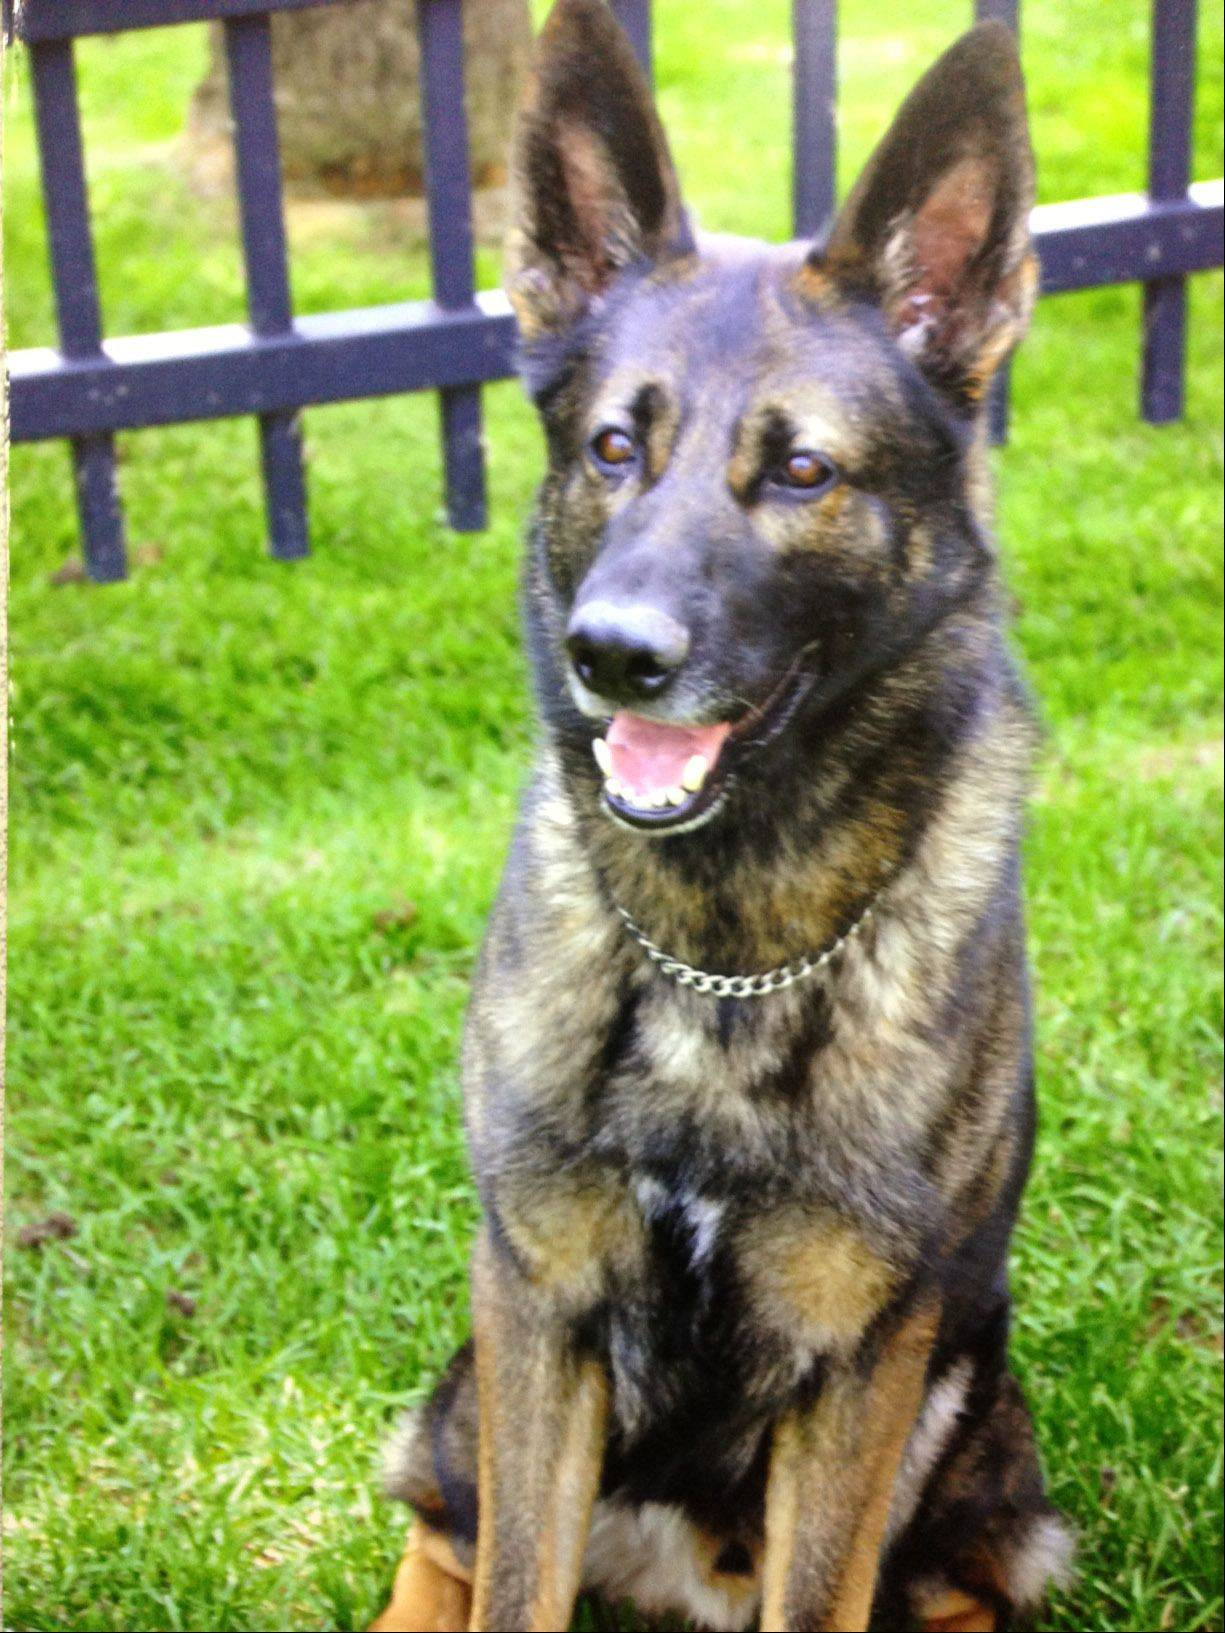 Keiser, part of the Elgin Police Department's canine unit, died of cancer while on duty in 2013. The German shepherd was 8 years old and led an honorable career with the department working patrol and narcotics details.